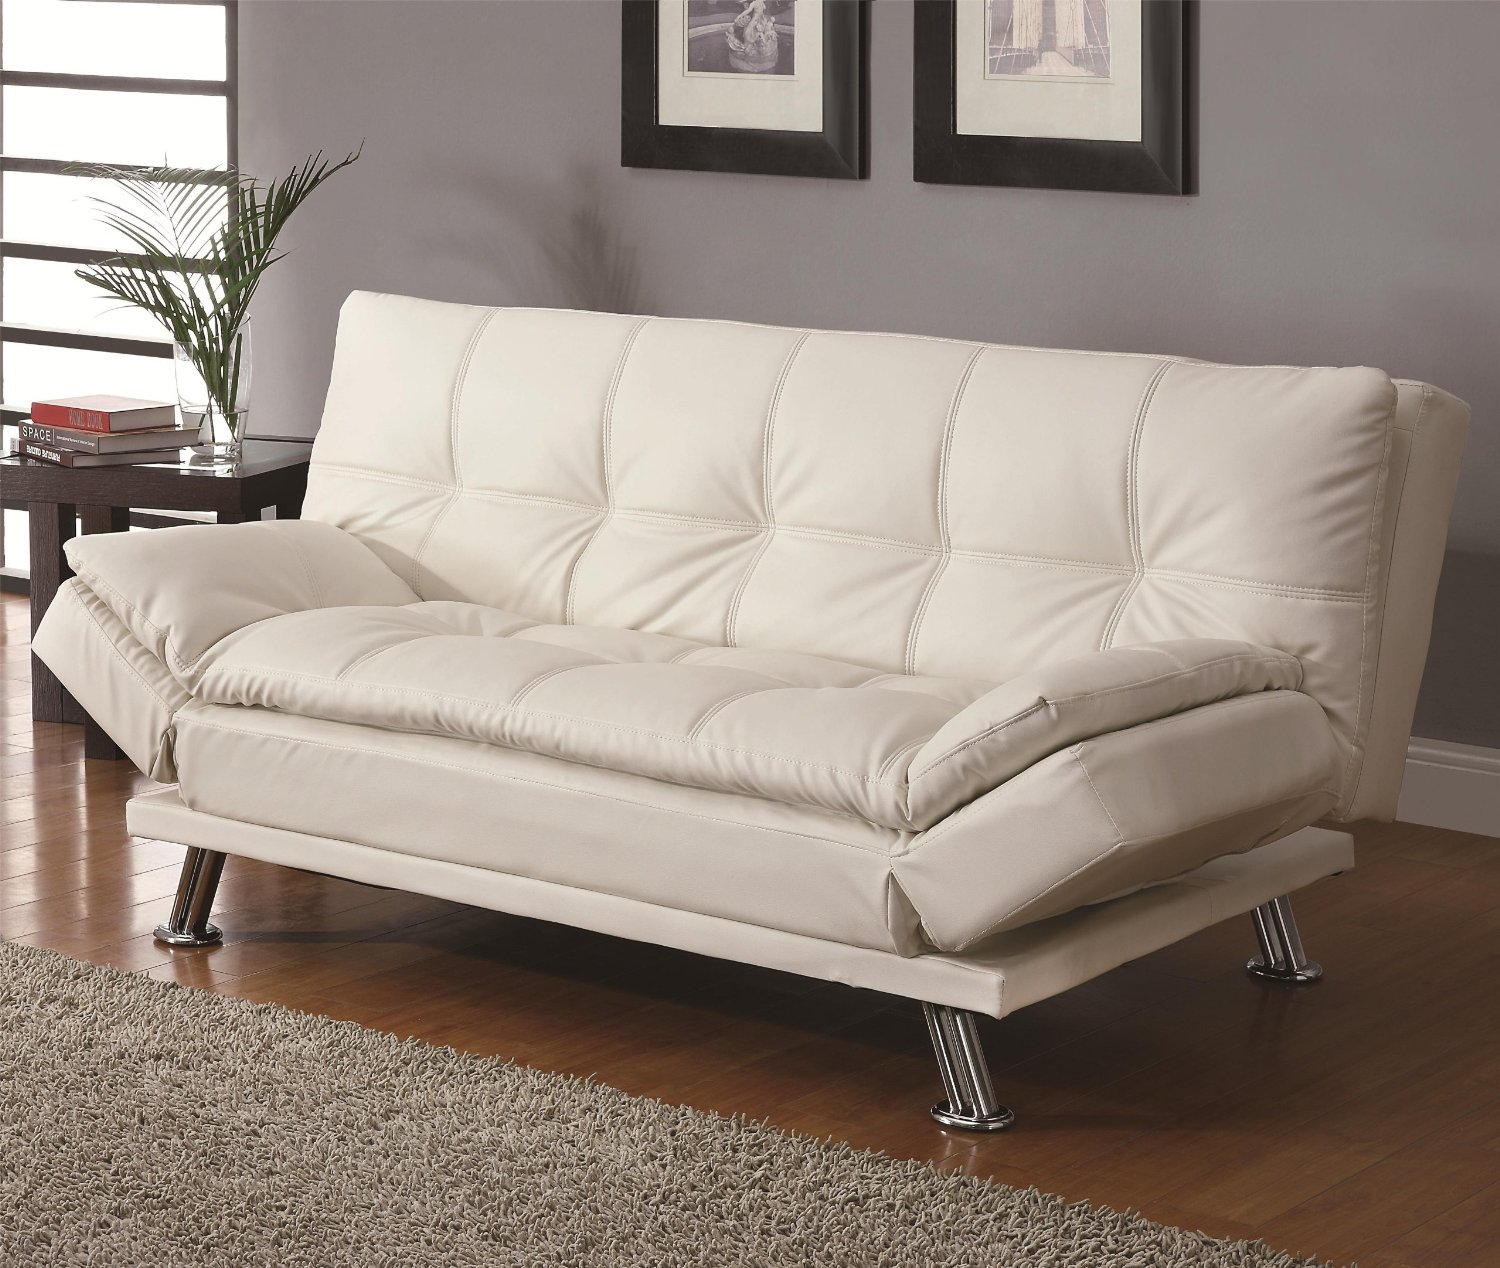 Image of: White Futon Value City